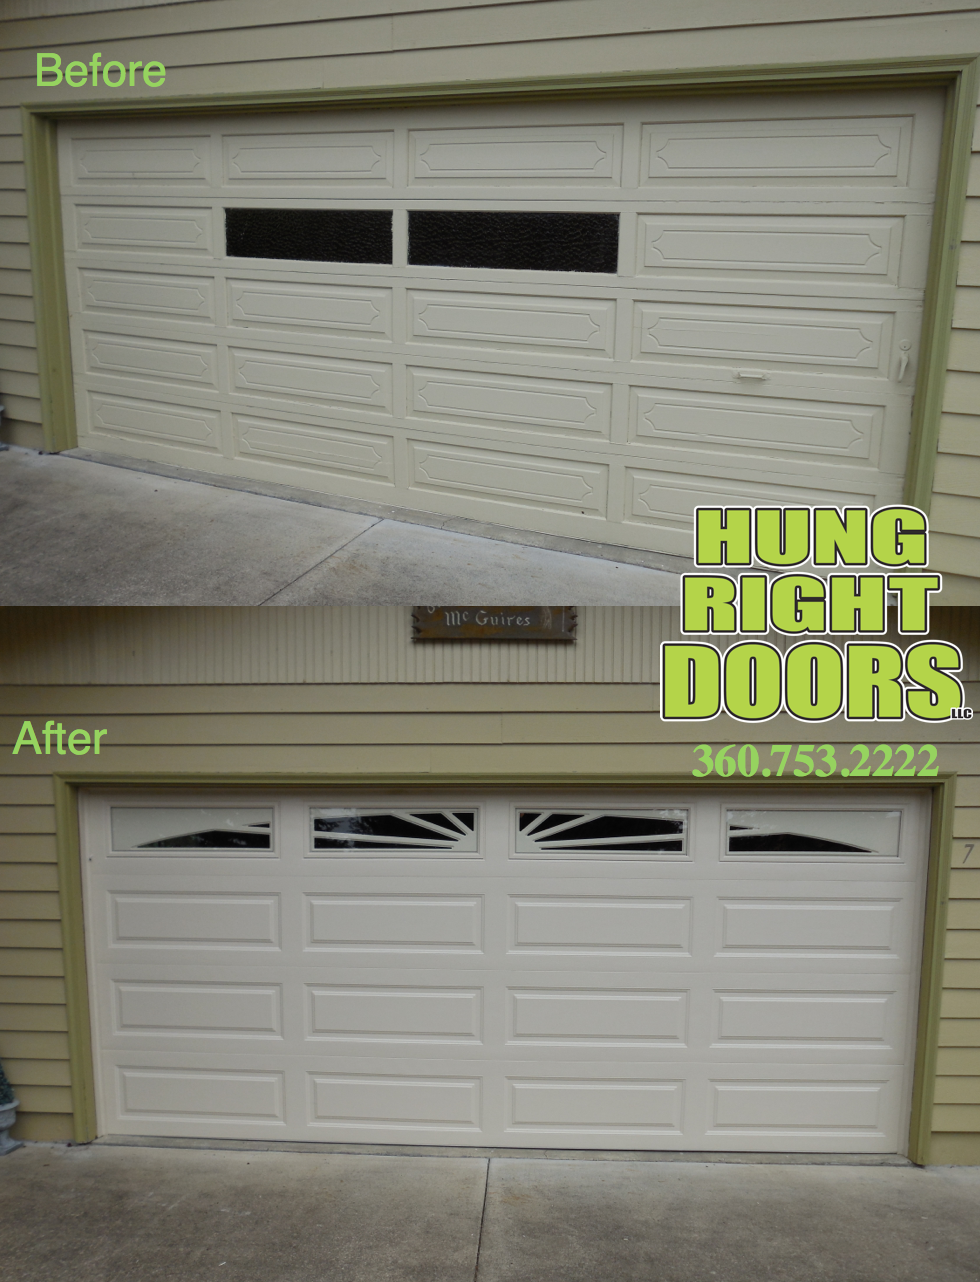 A Nice Before And After Photos Httphungrightdoorsllc Thanks